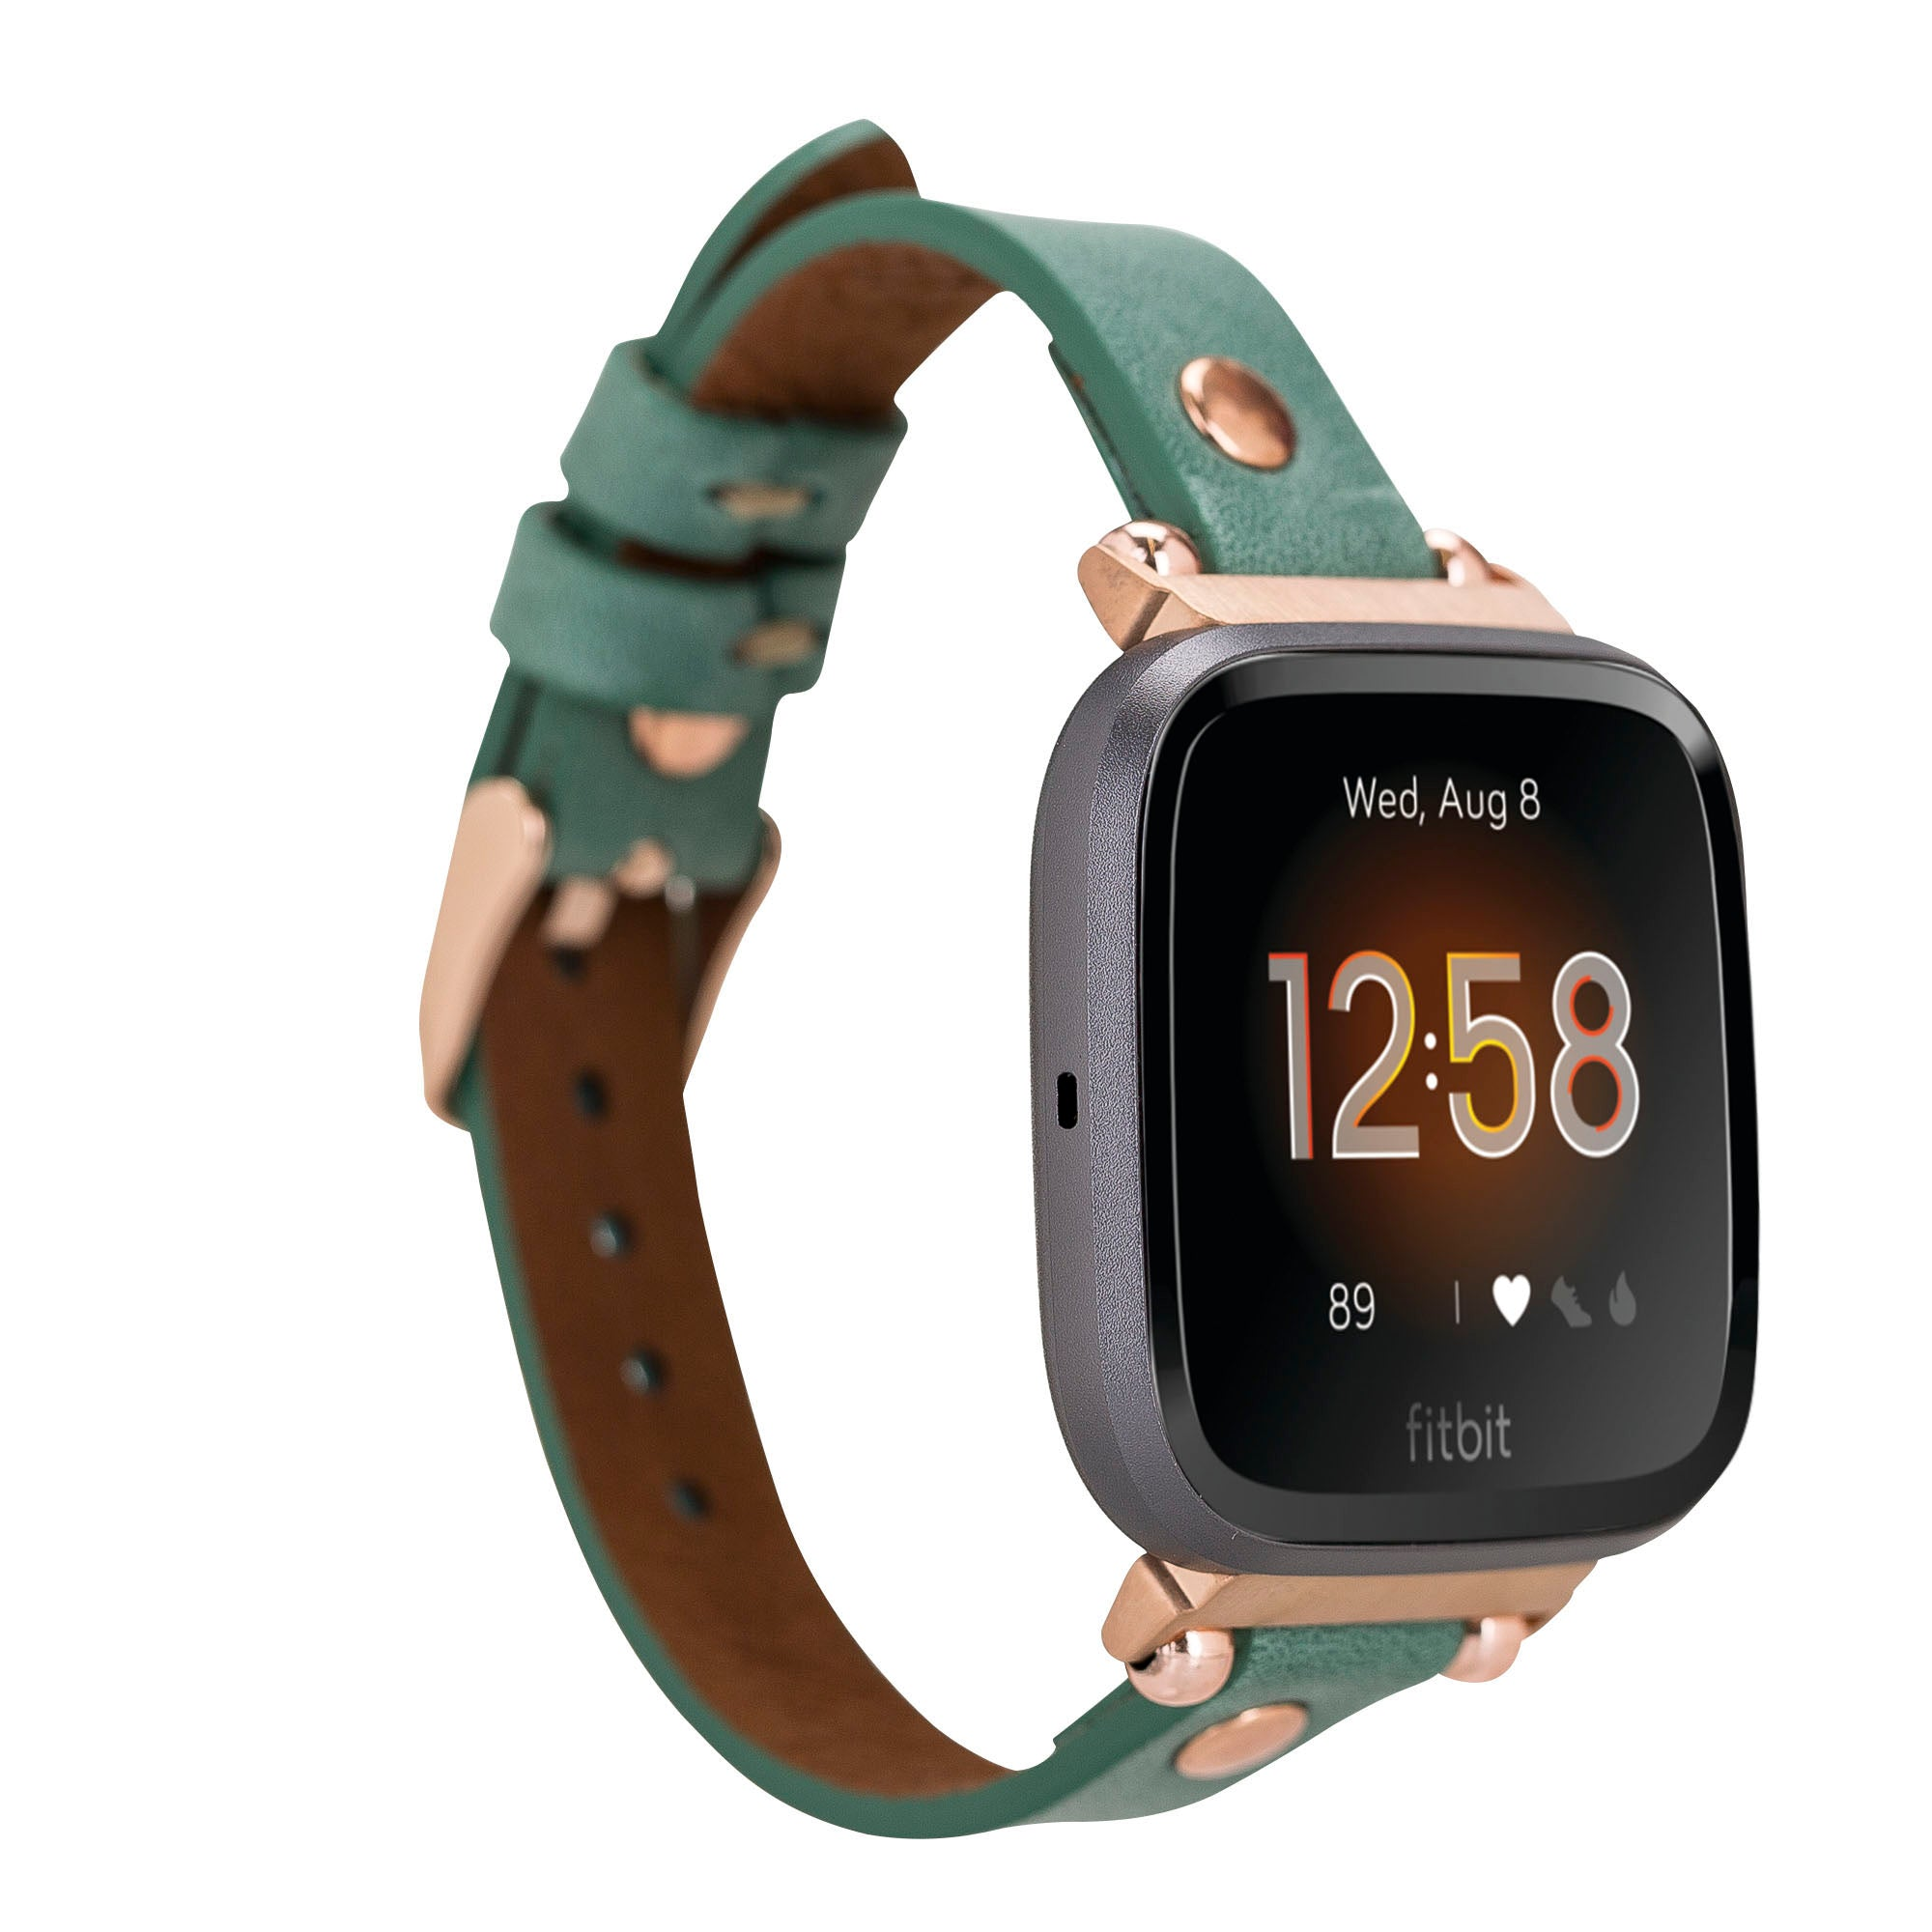 Ferro Strap - Full Grain Leather Band for Fitbit Versa 2 / Fitbit Versa 1 / Fitbit Versa Lite - GREEN - saracleather